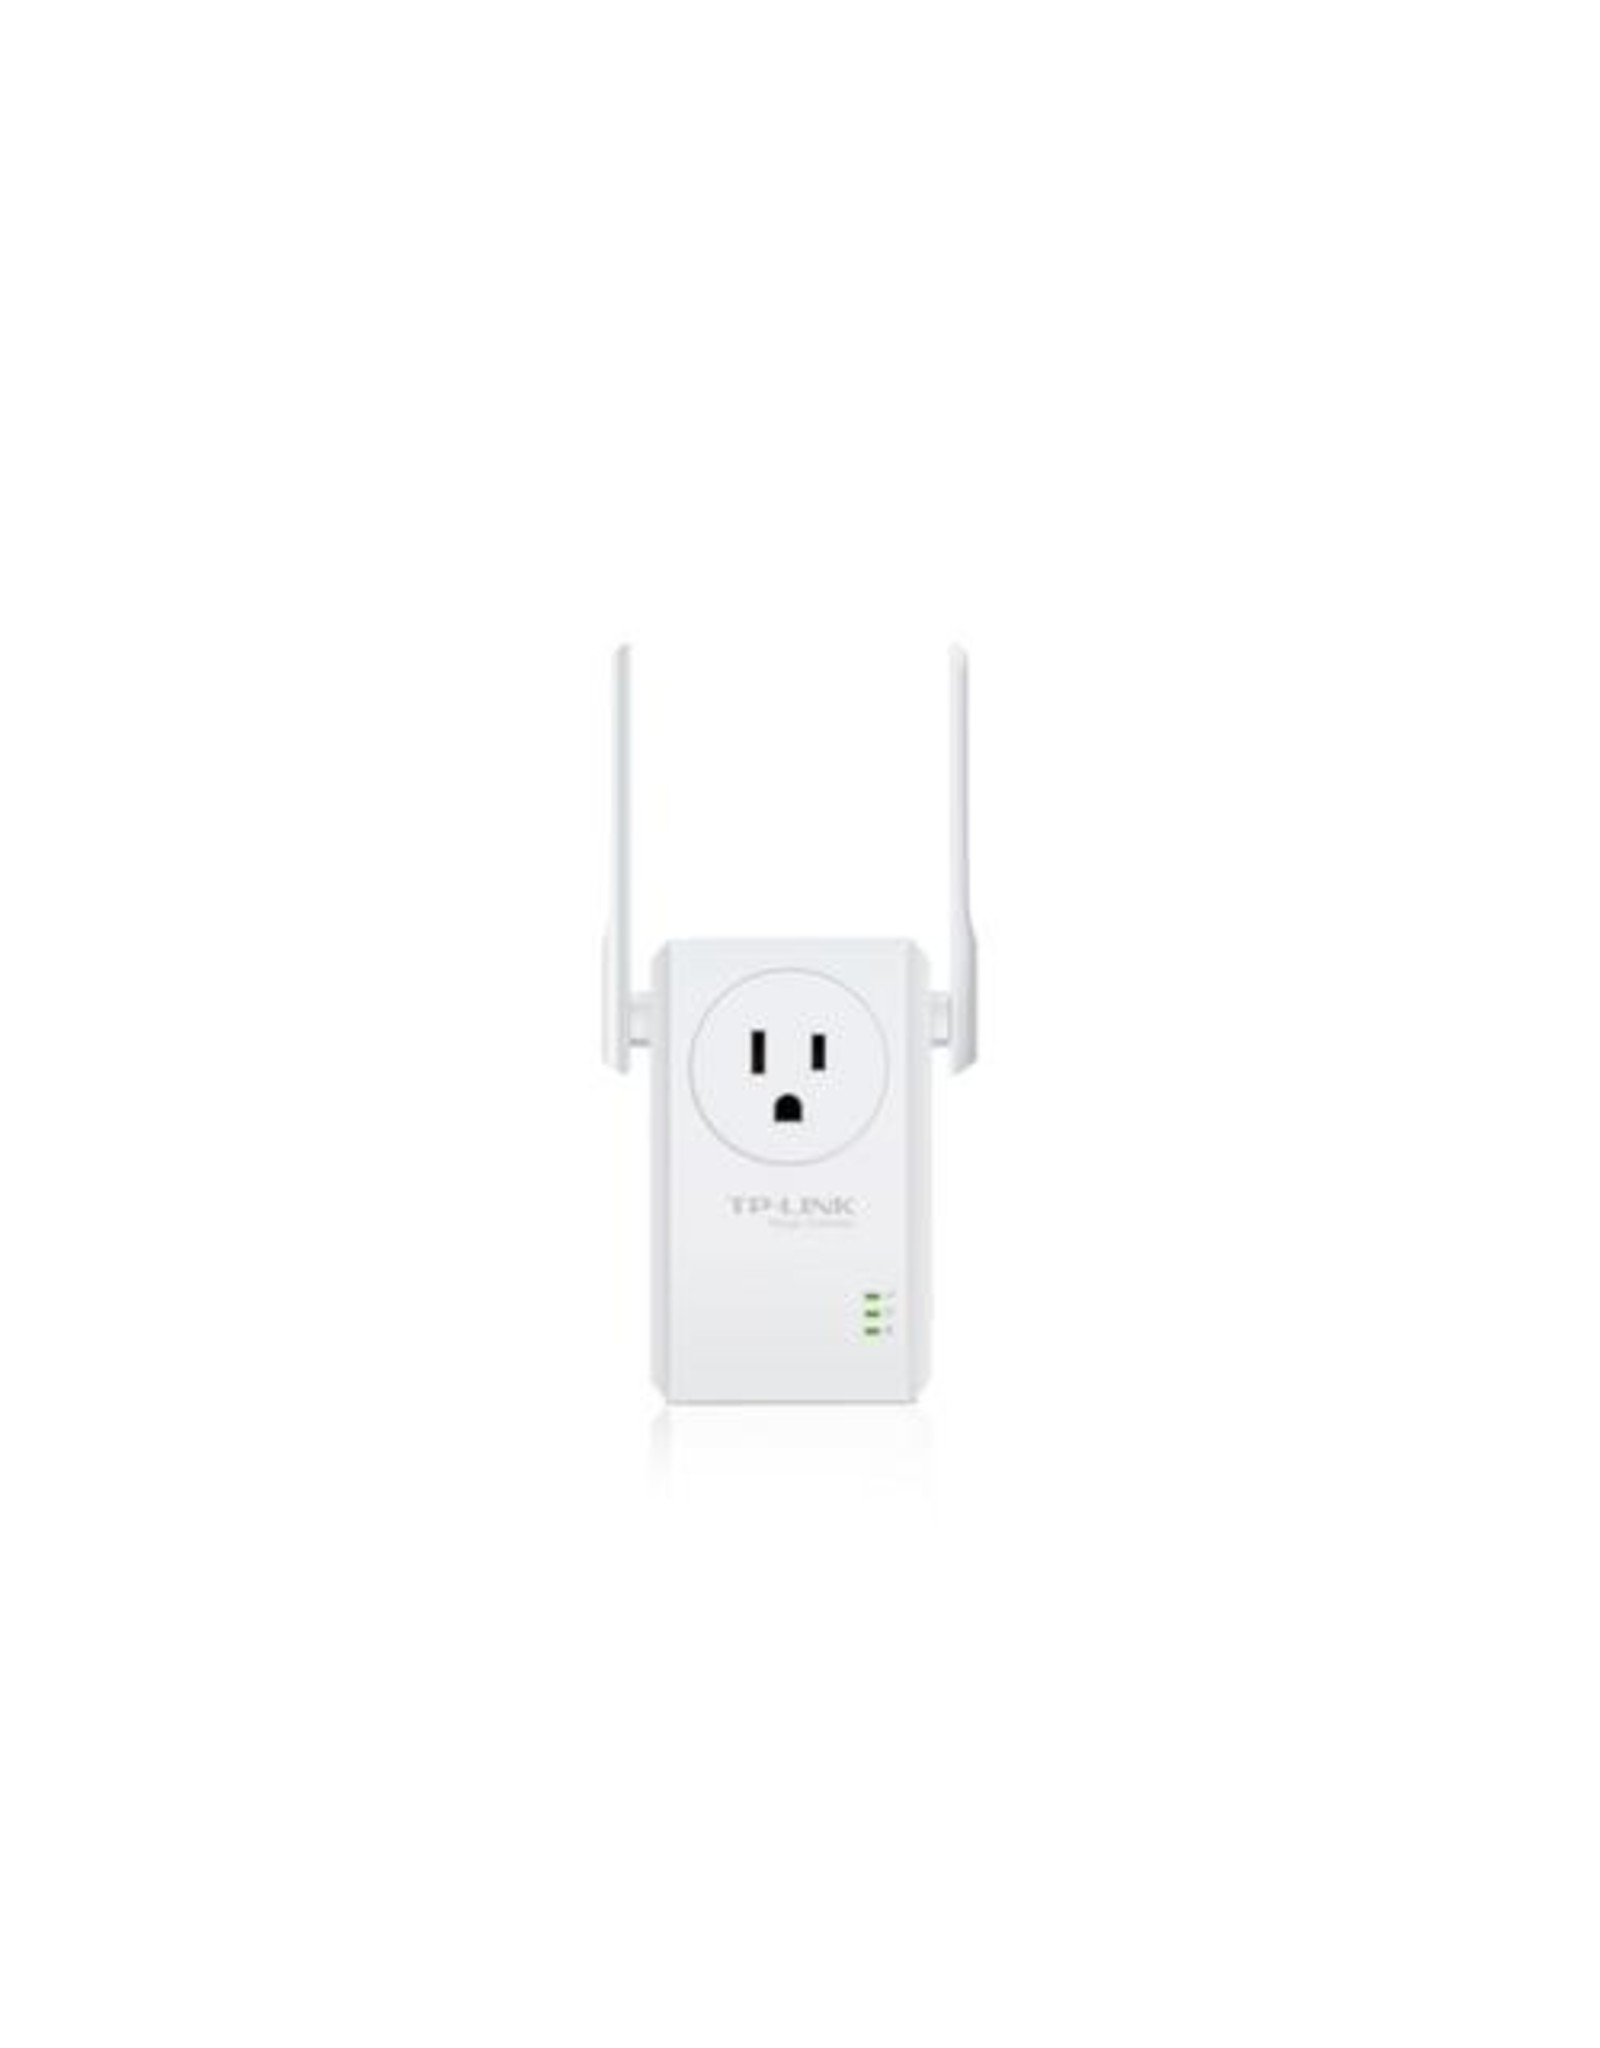 TP-Link 300Mbps Wireless Range Extender incl. stopcontact (refurbished)